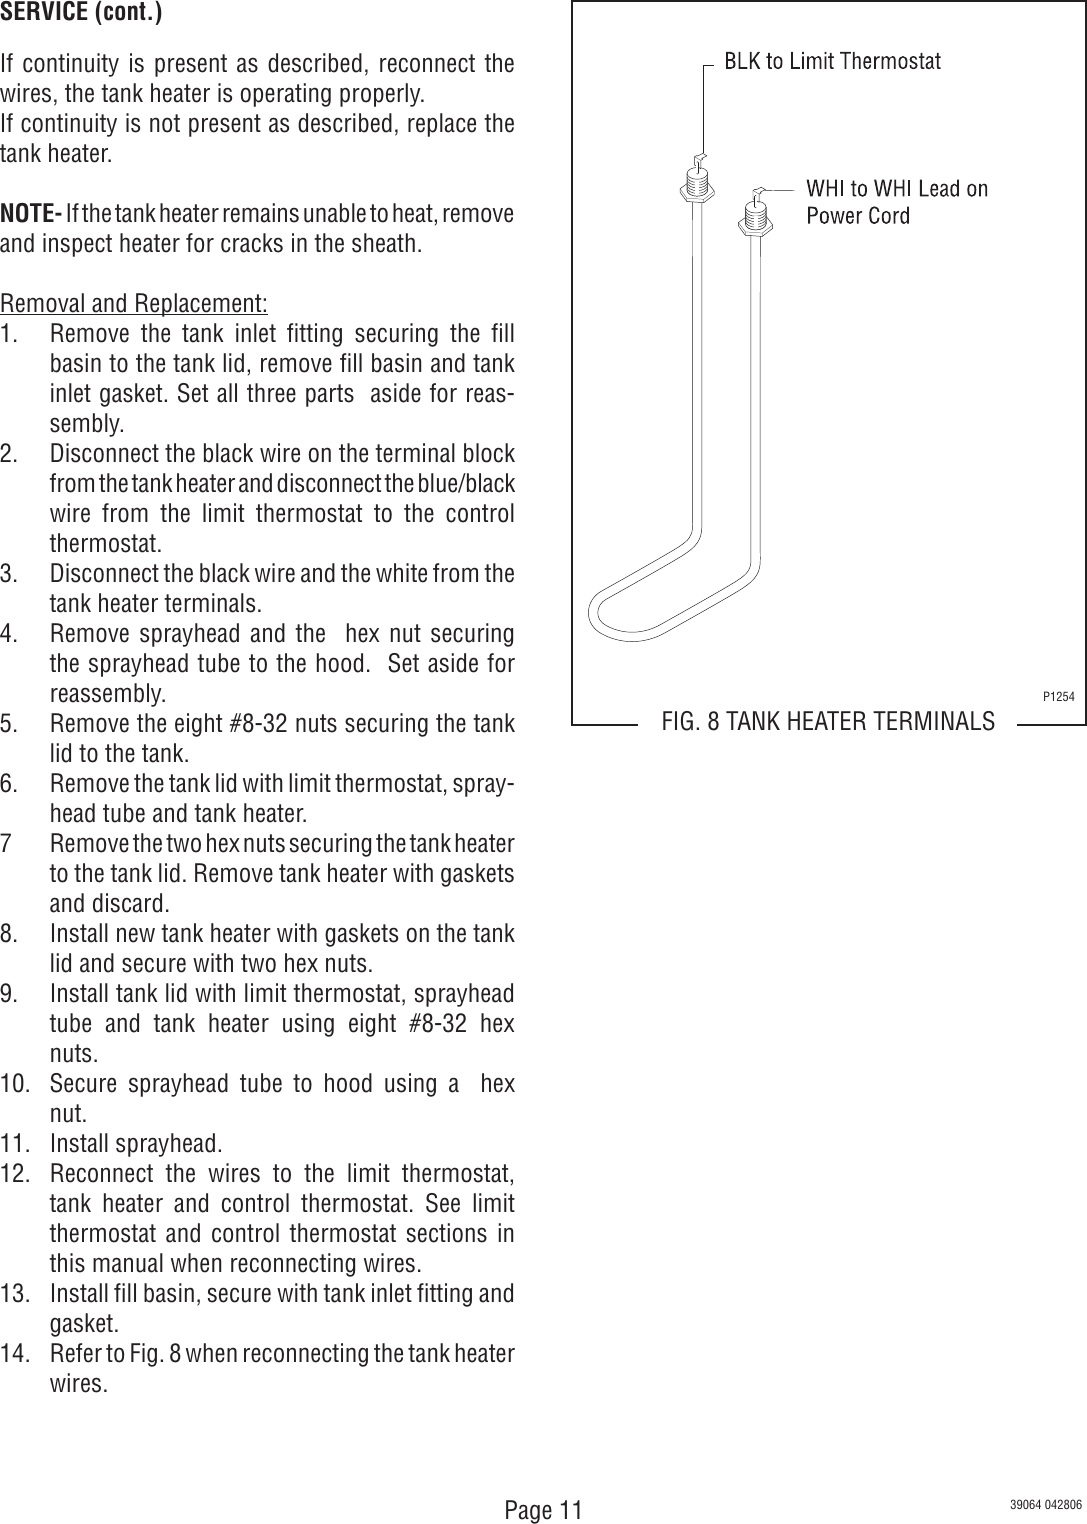 Bunn 1 Gpr 5 75 Gprcanada Owner S Manual Operating Service Vpr Tc Parts Catalog Wiring Diagram Page 11 Of 12